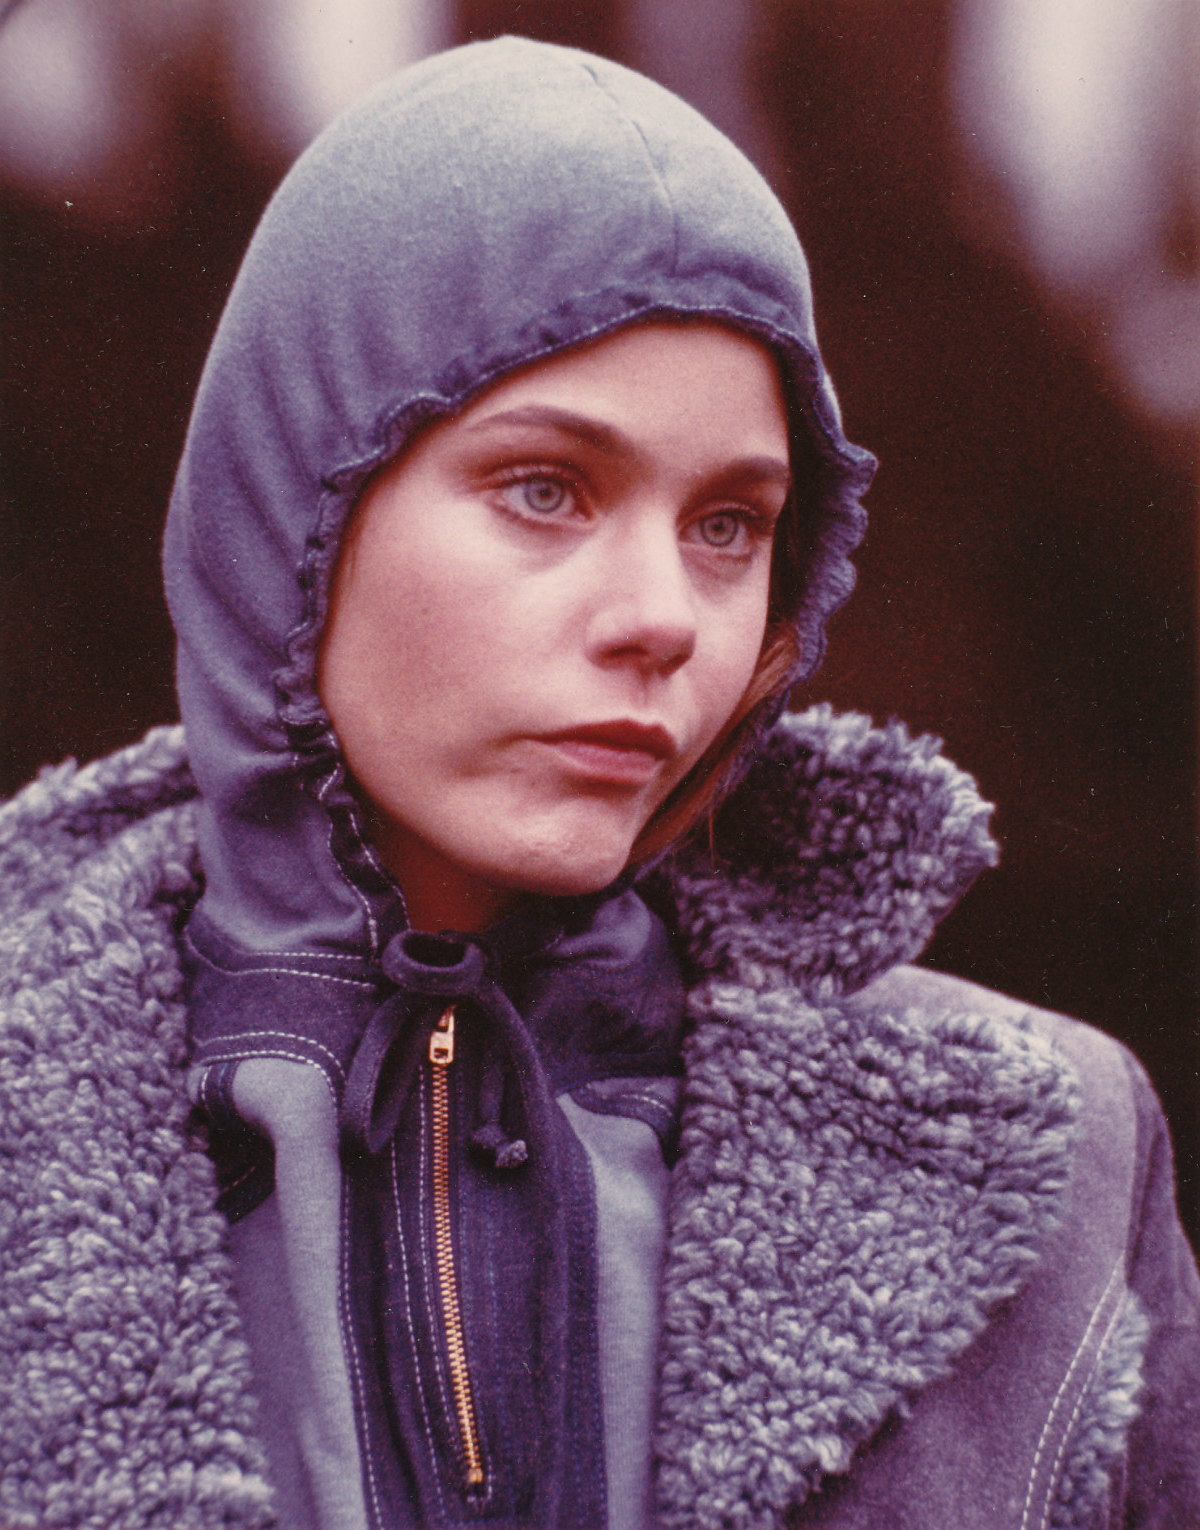 First Love Rewriting And Major Editing: Everything Susan Dey: 4 Photos Of Susan Dey From First Love